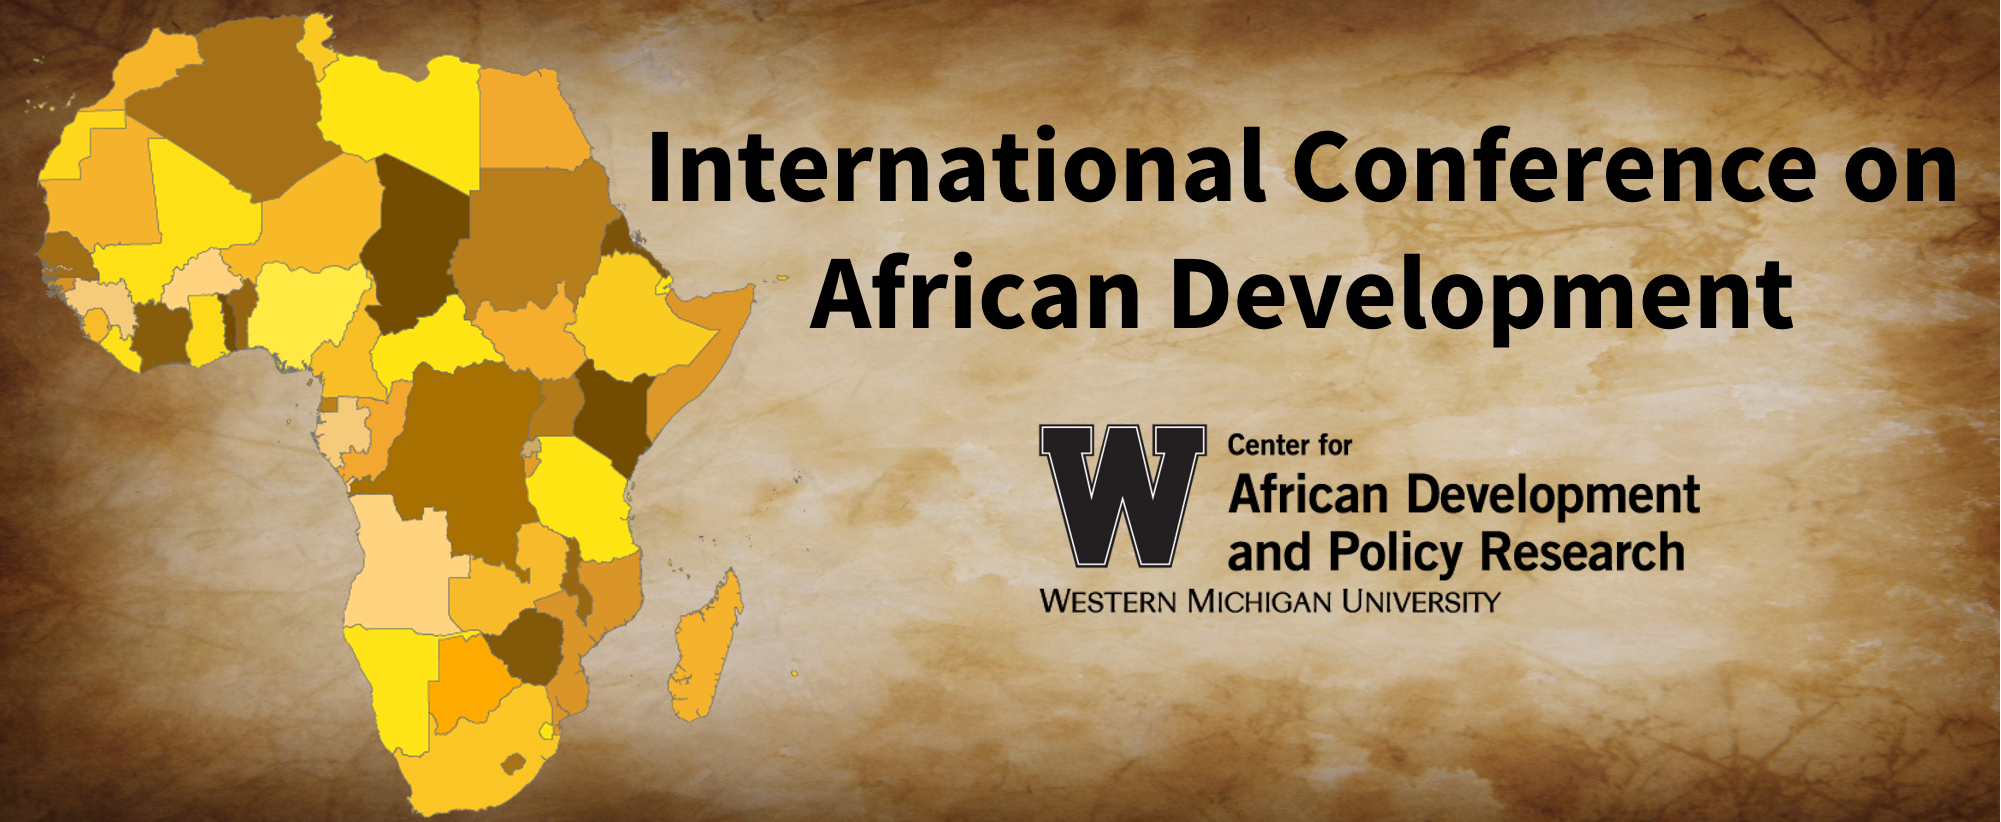 10th International Conference on African Development